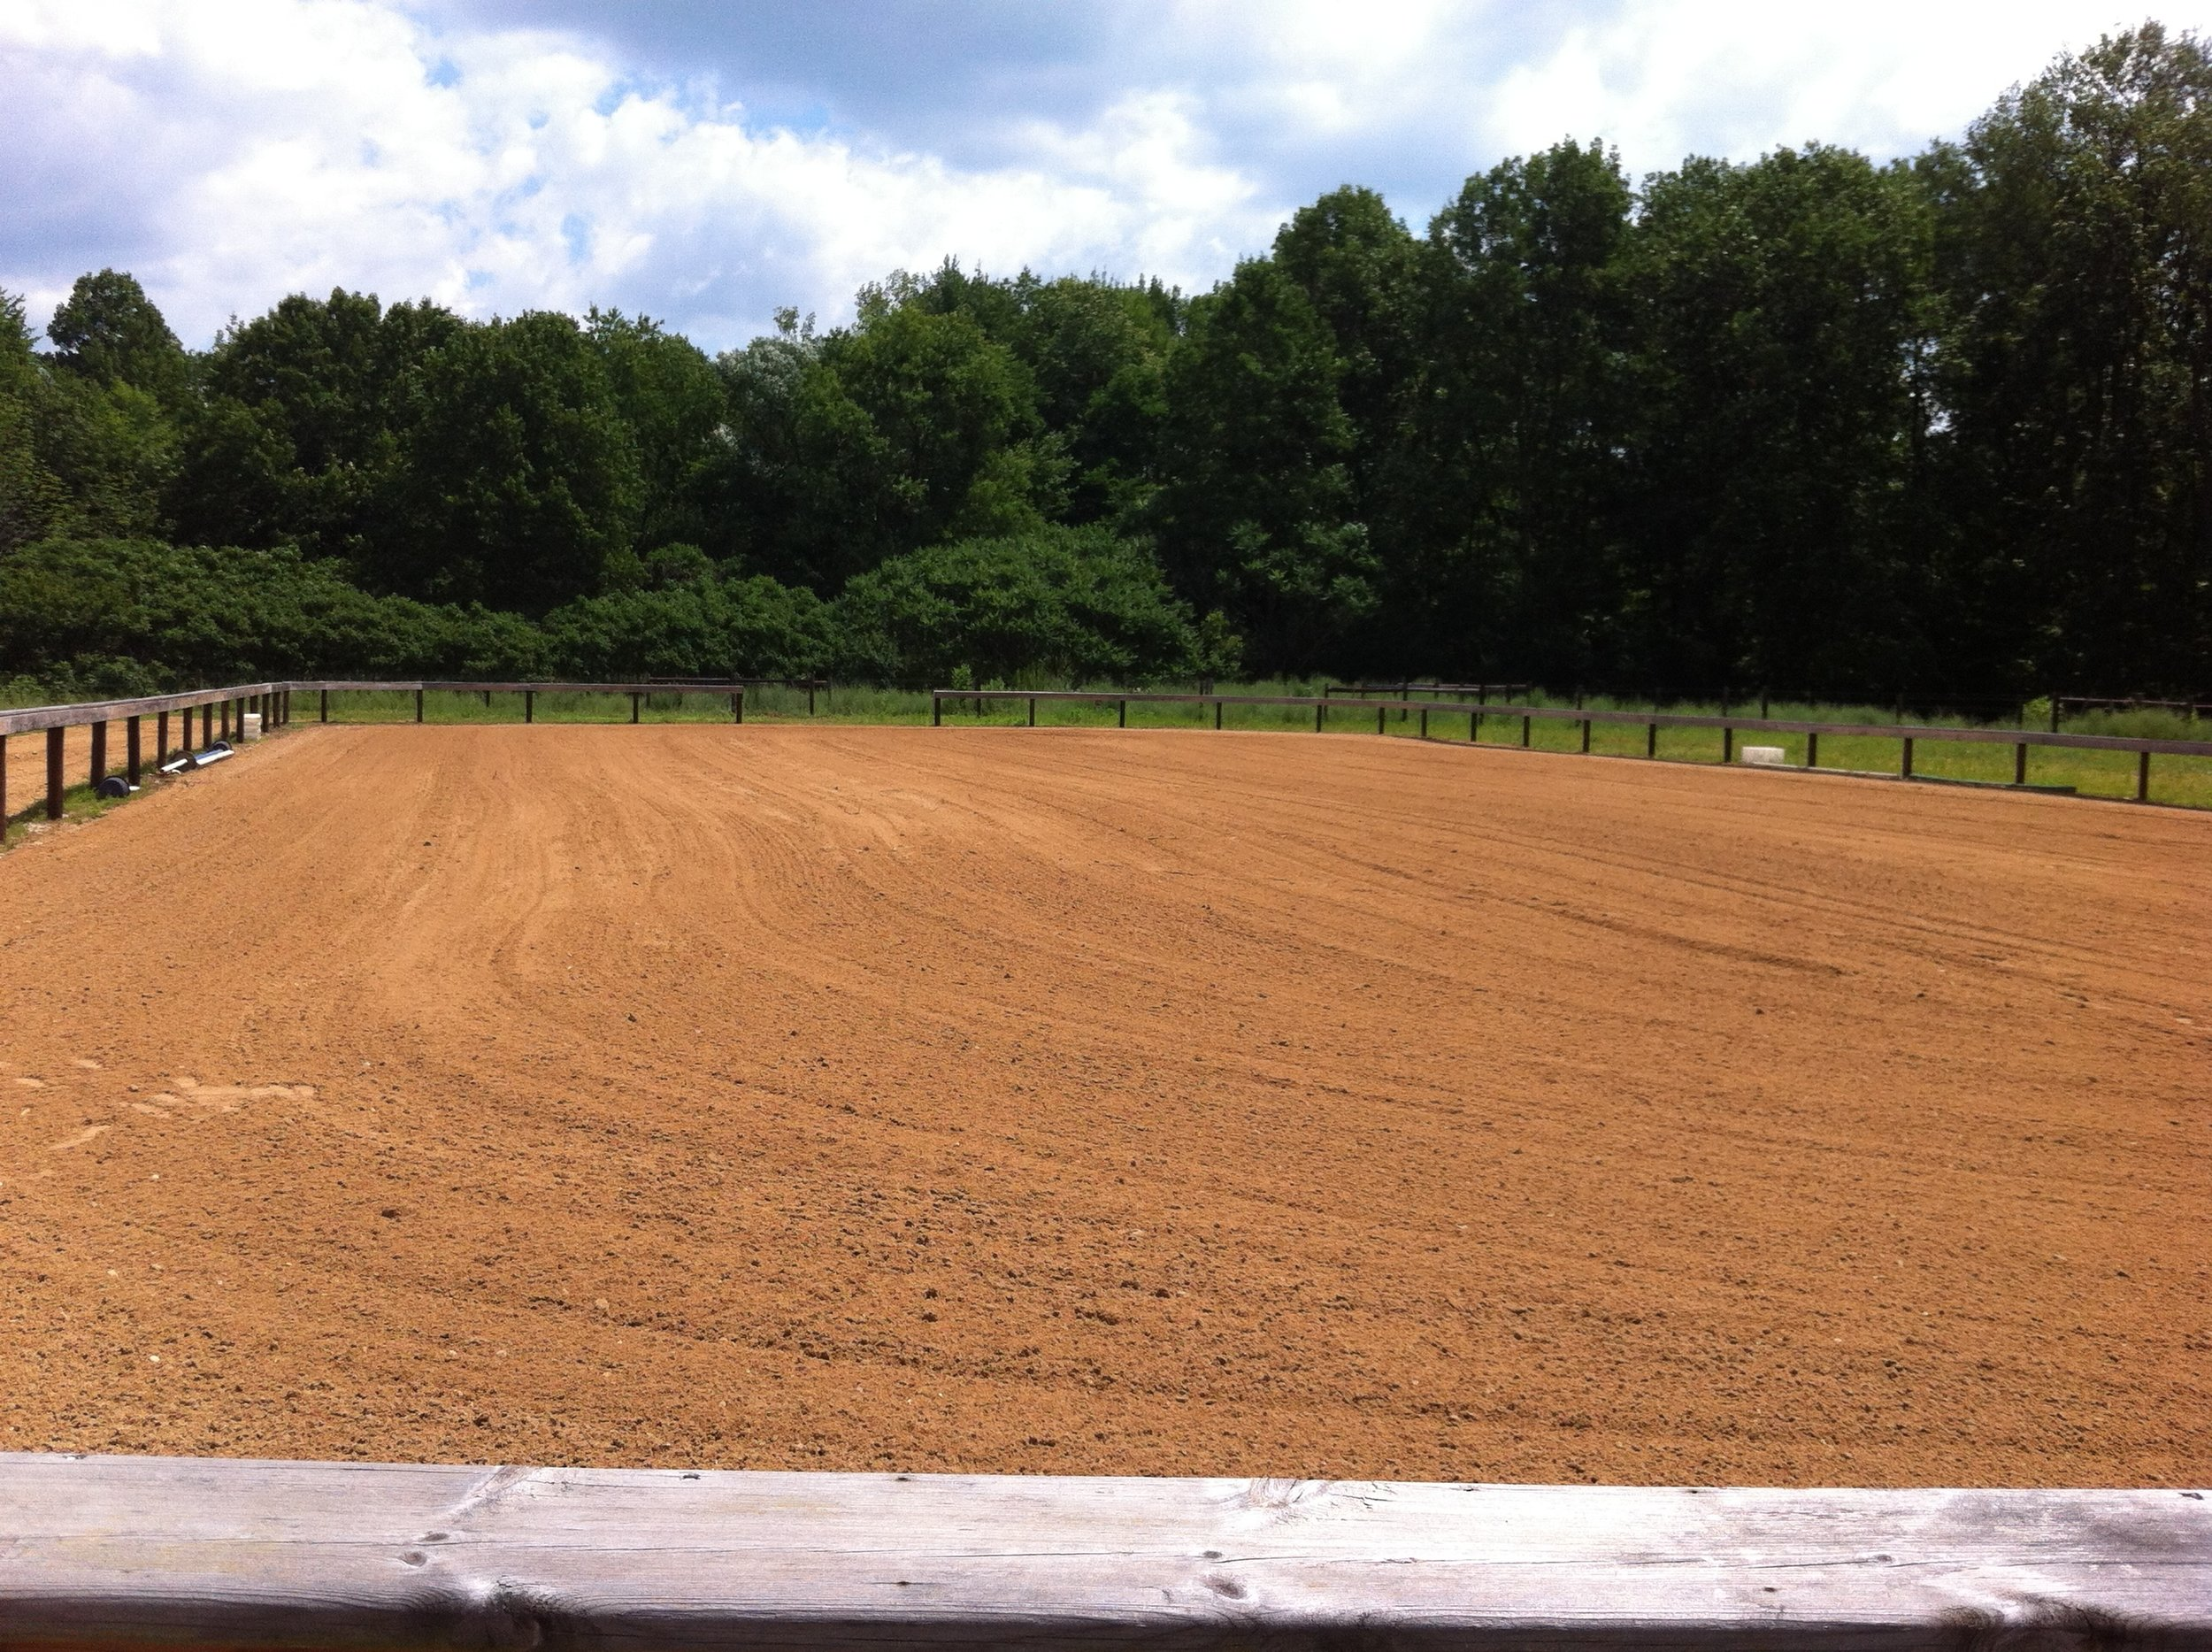 80x100 outdoor arena with limited bleacher seating